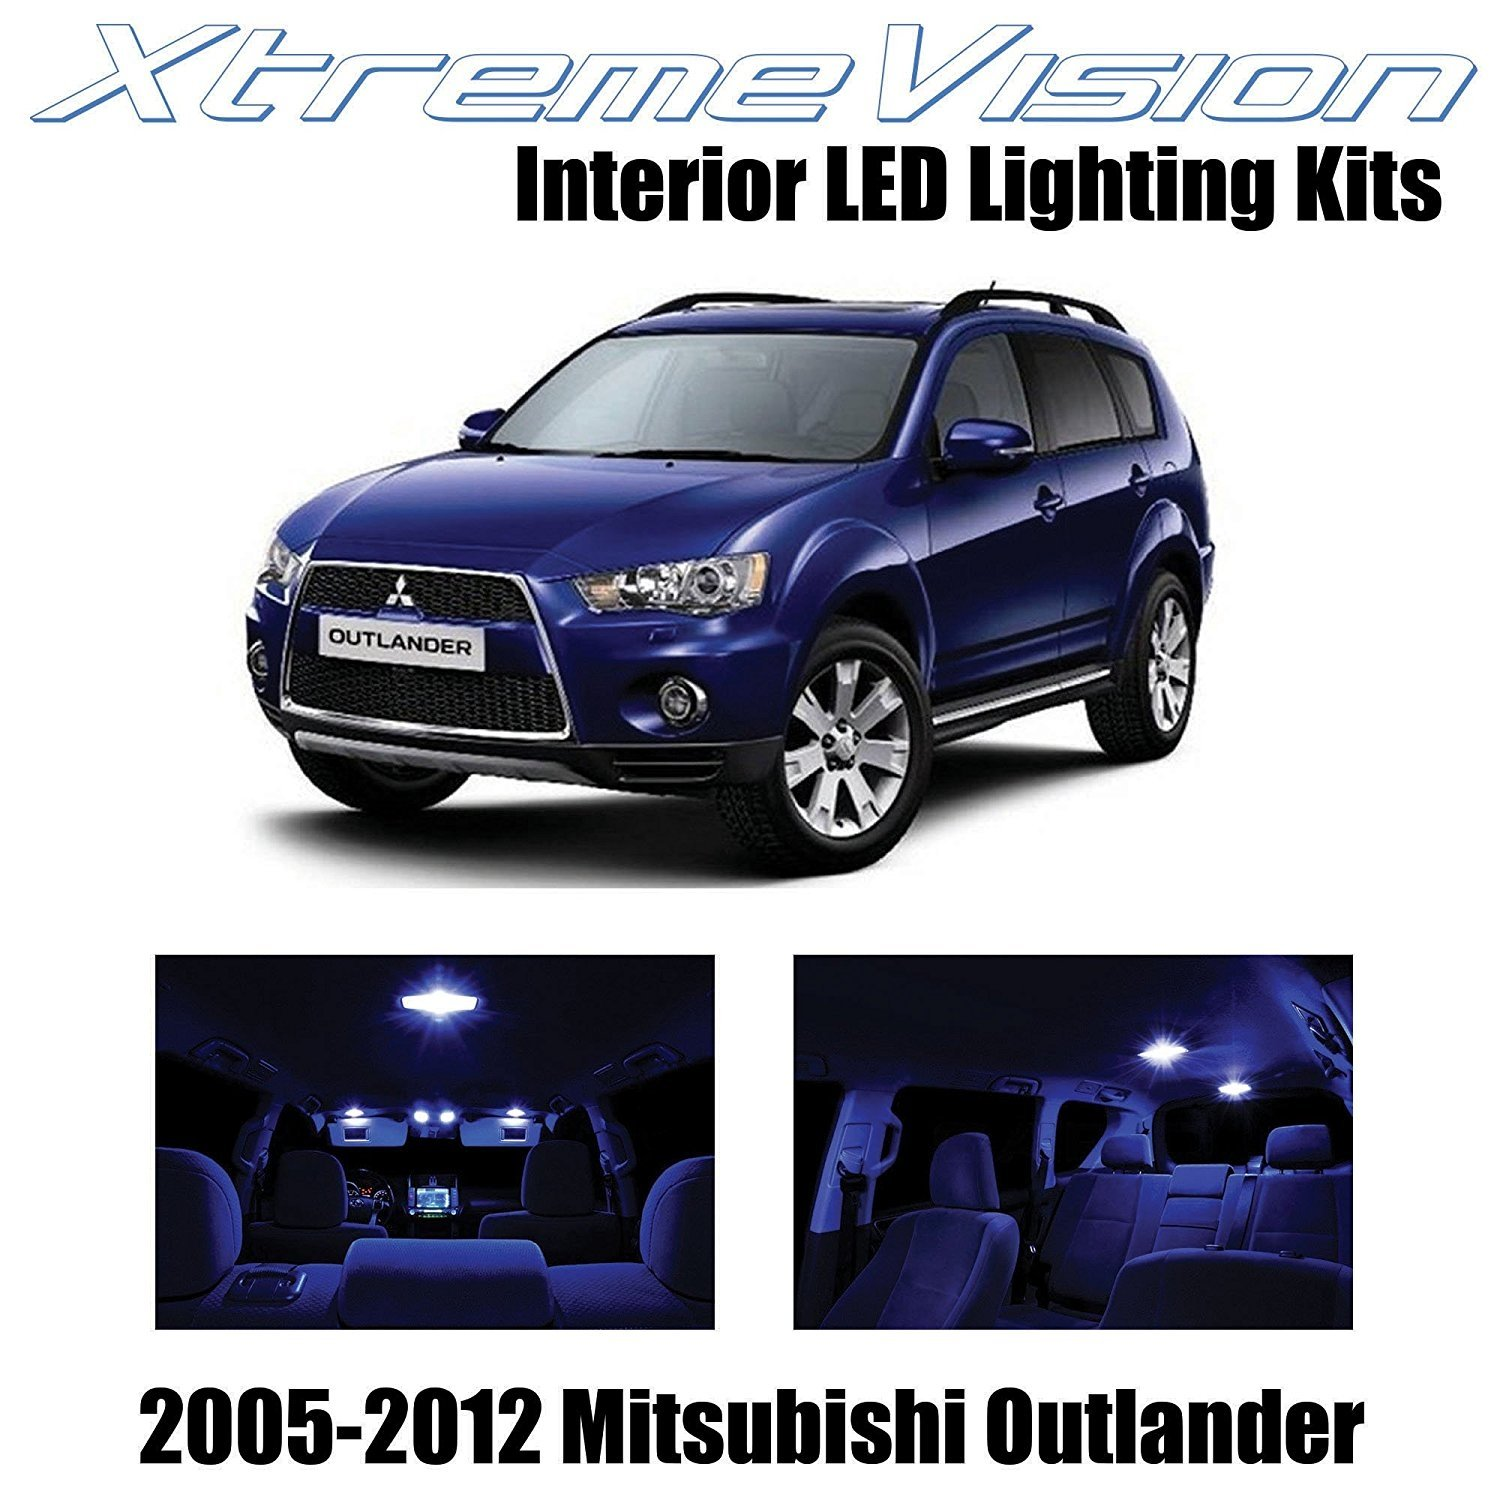 XtremeVision LED for Mitsubishi Outlander 2005-2012 (4 Pieces) Red Premium Interior LED Kit Package + Installation Tool